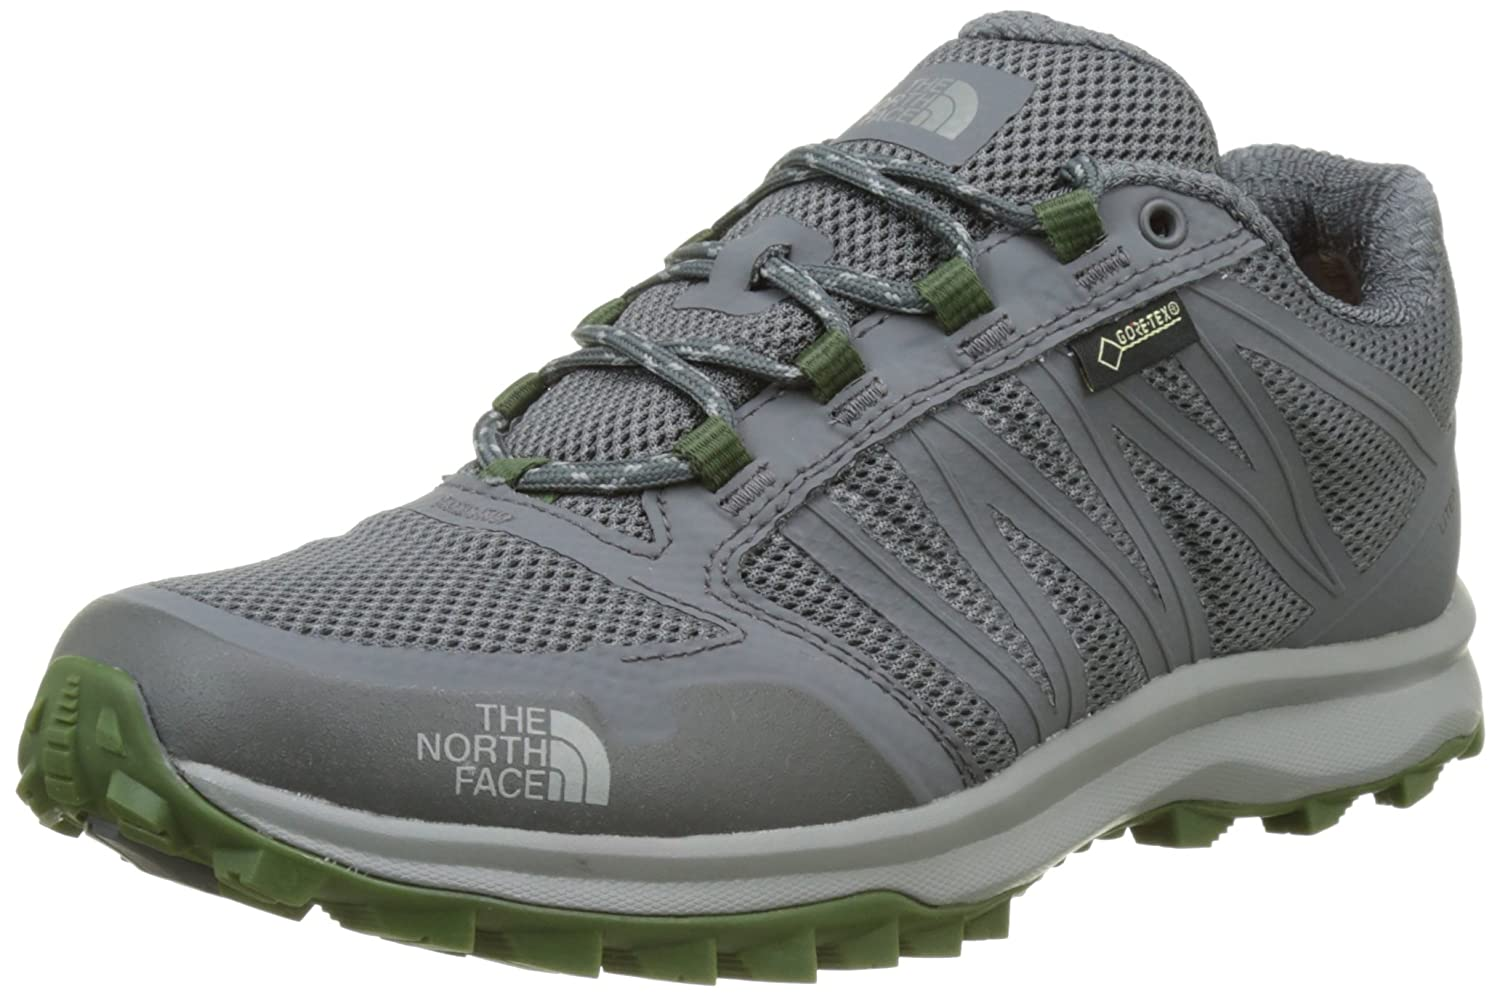 THE NORTH FACE Herren Litewave Fastpack Gore-tex Trekking- & Wanderhalbschuhe